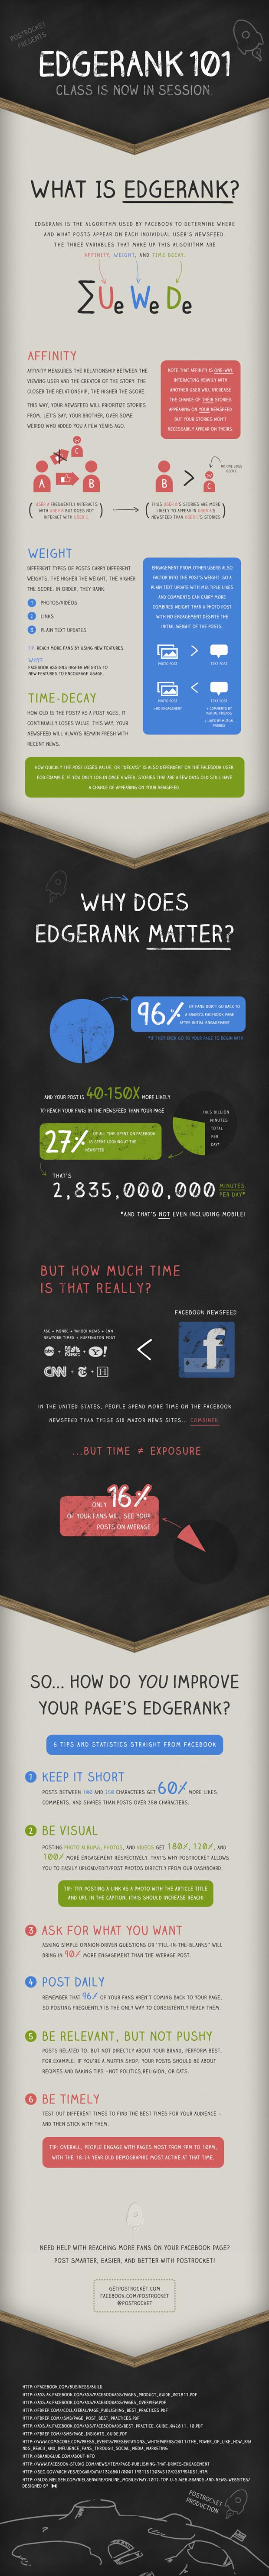 Facebook EdgeRank Explained [infographic]